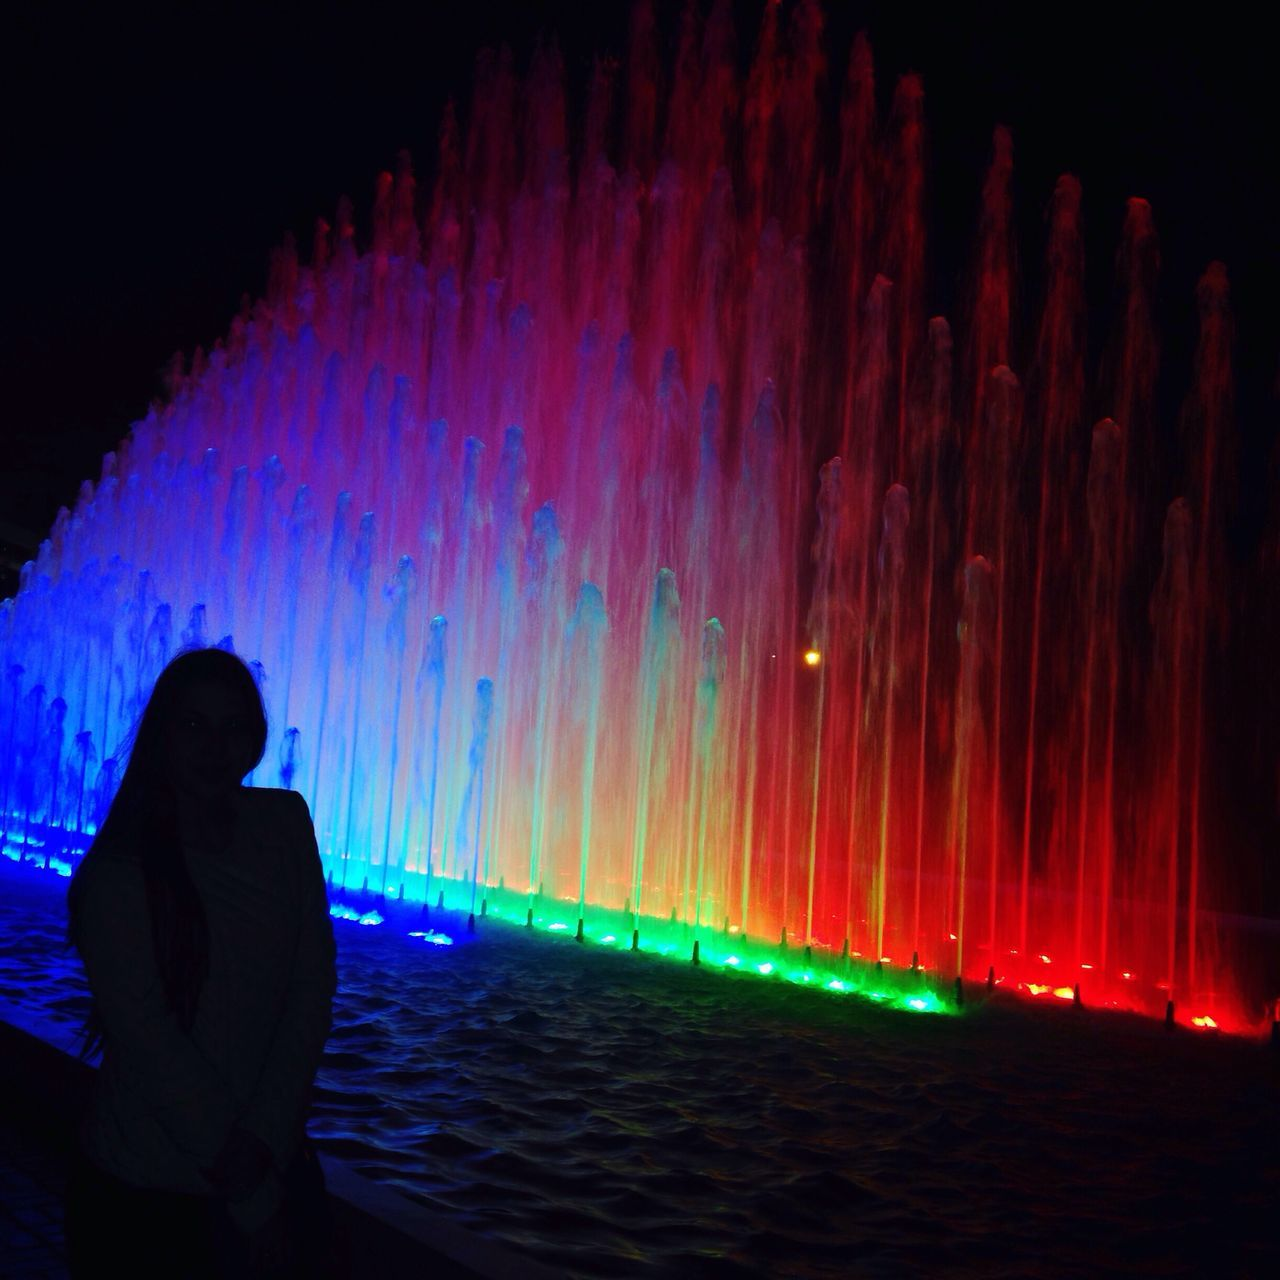 night, illuminated, multi colored, colorful, real people, motion, water, long exposure, one person, women, leisure activity, lifestyles, indoors, men, nature, sky, people